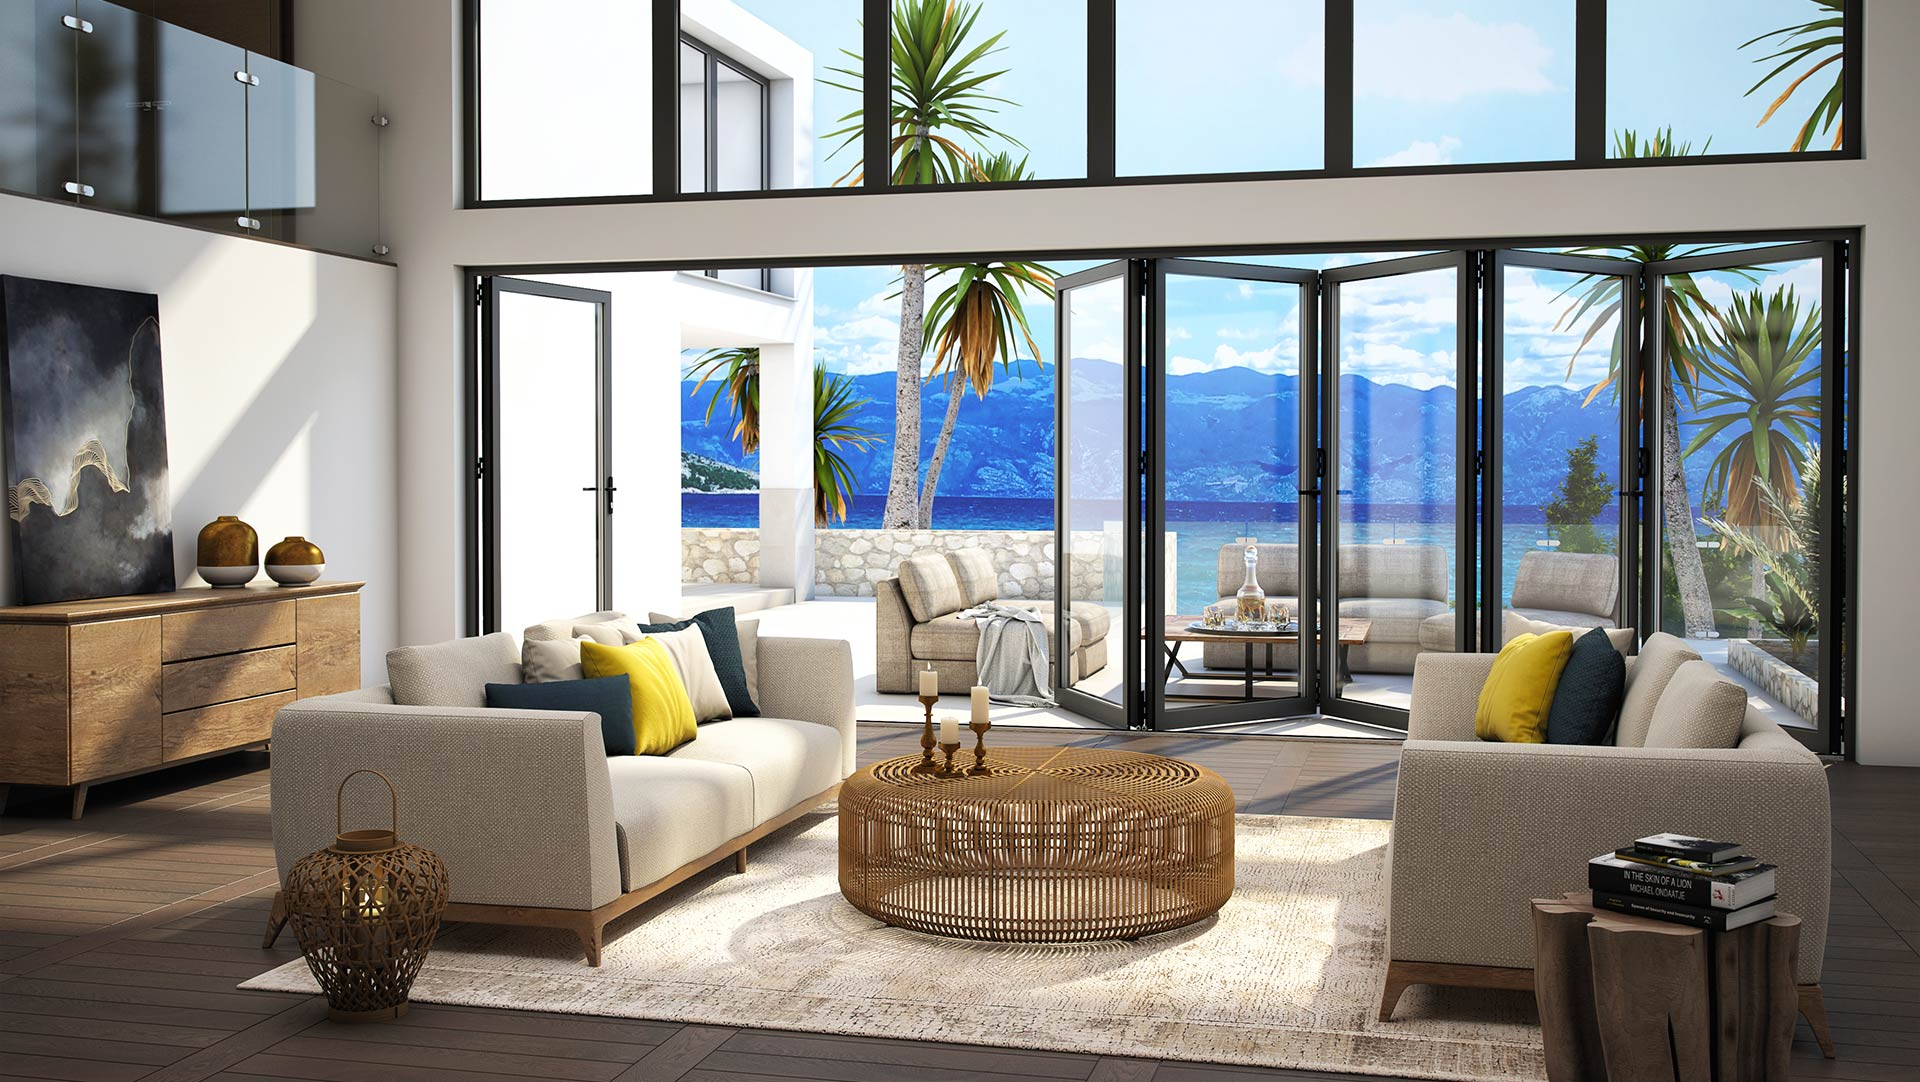 Terrace systems » Folding doors » MB-86 Fold Line